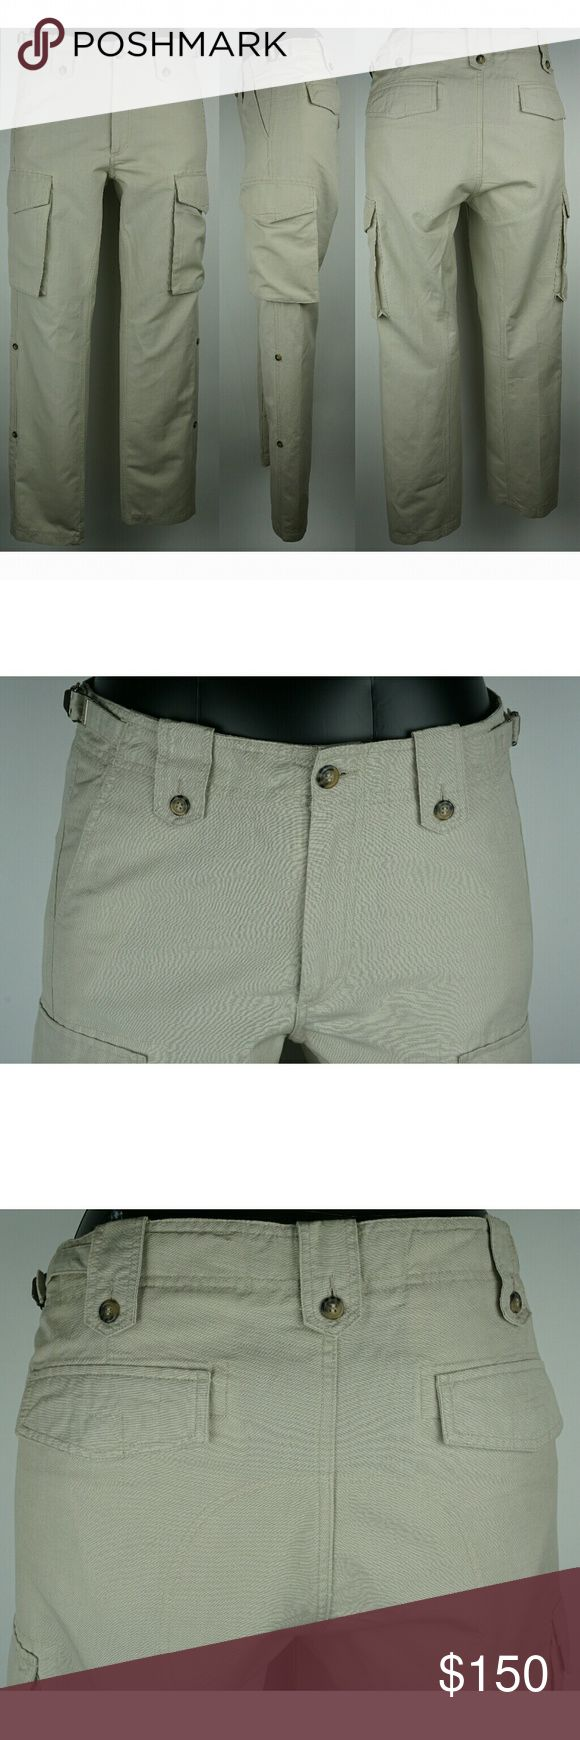 Men's Burberry Summer Cargo Pants. Beige color with zipper fly. Legs can be rolled up. Never worn but no tags. 52% Linen 48% Cotton  *Sizing--please measure jeans that fit you and compare. European designers such as Burberry, Armani, etc typically run small. sizes in inches: Waist--35 Hips  --41.5 Inseam--34 Outseam--45 Front Rise--13 Back Rise--14.25 Leg Opening--18 Material-- 52% Linen 48% Cotton Burberry Pants Cargo